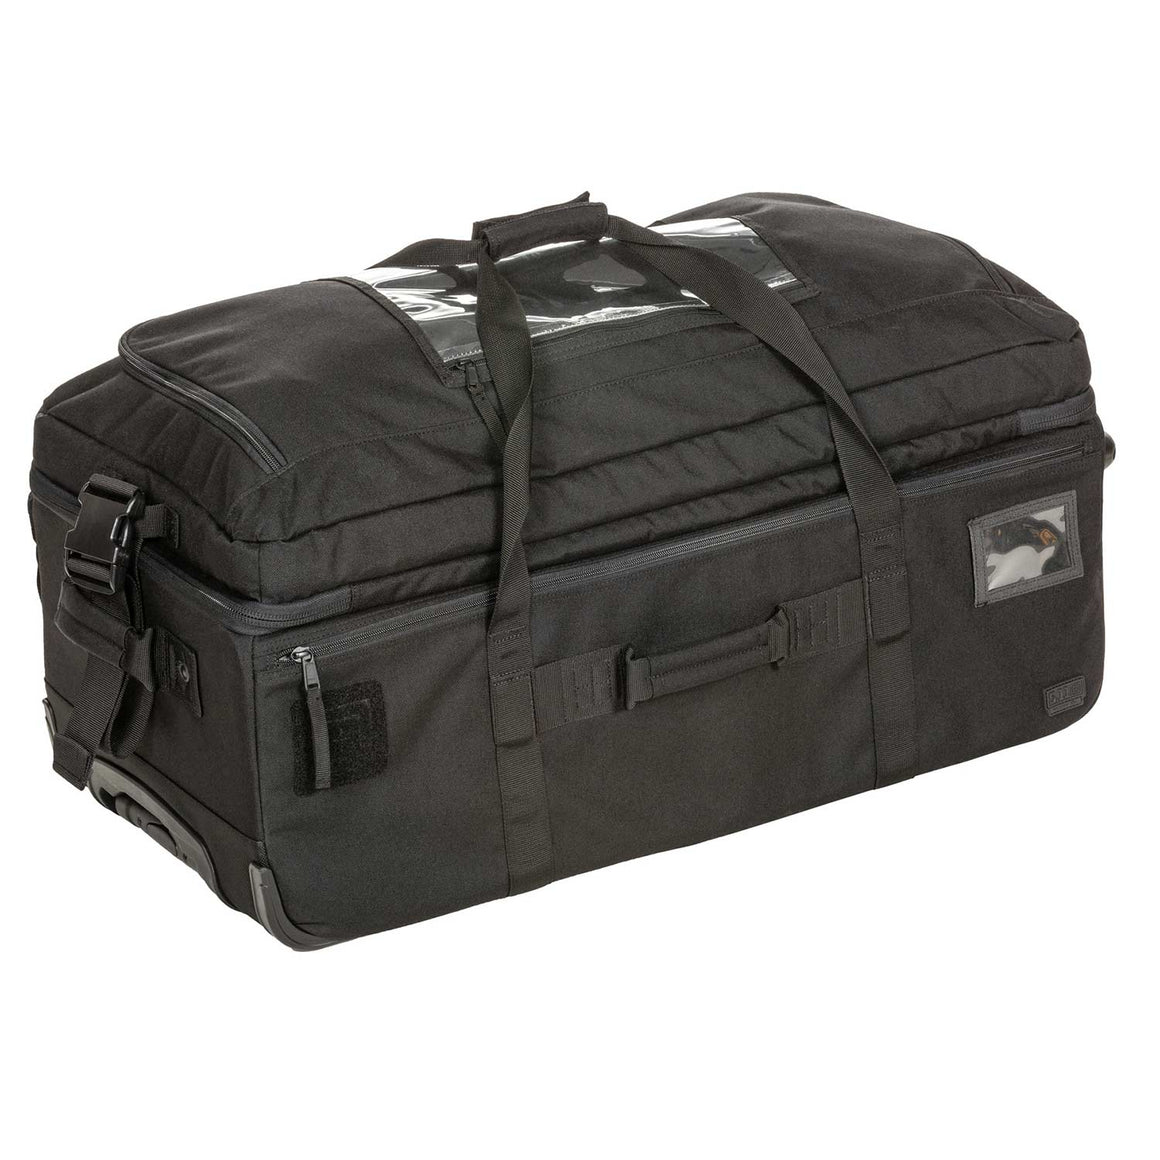 5.11 Tactical Mission Ready 3.0 Rolling Duffel Bag, 5.11 Tactical Mission Ready 3.0 Rolling Duffel Bag